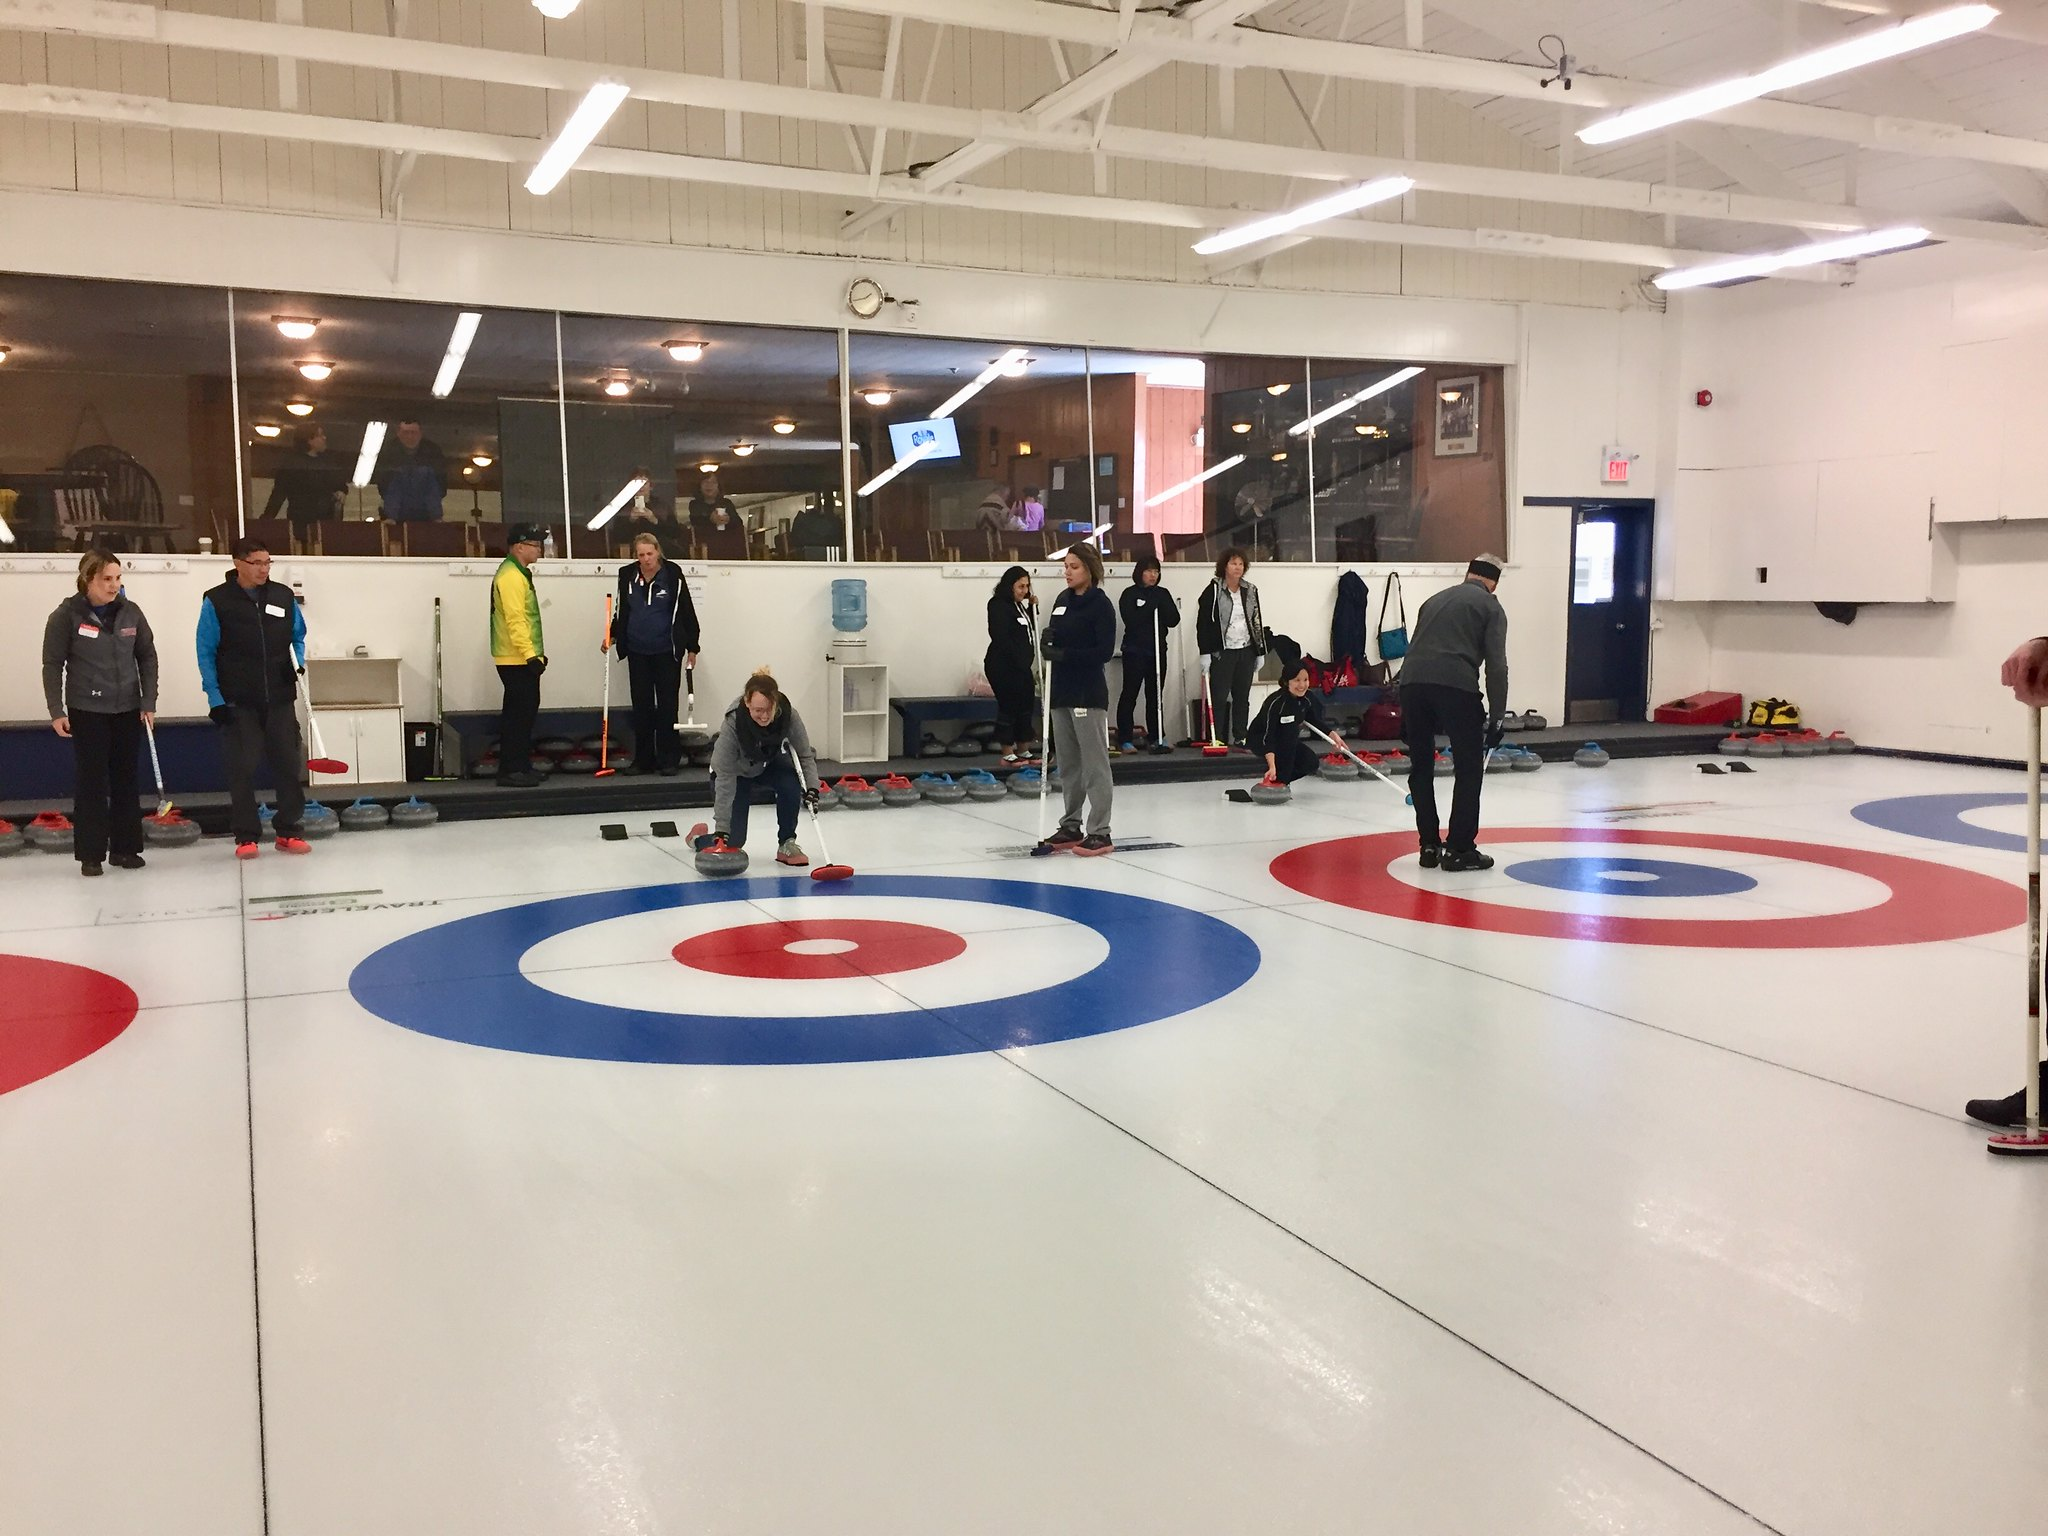 Delivering the curling stone.